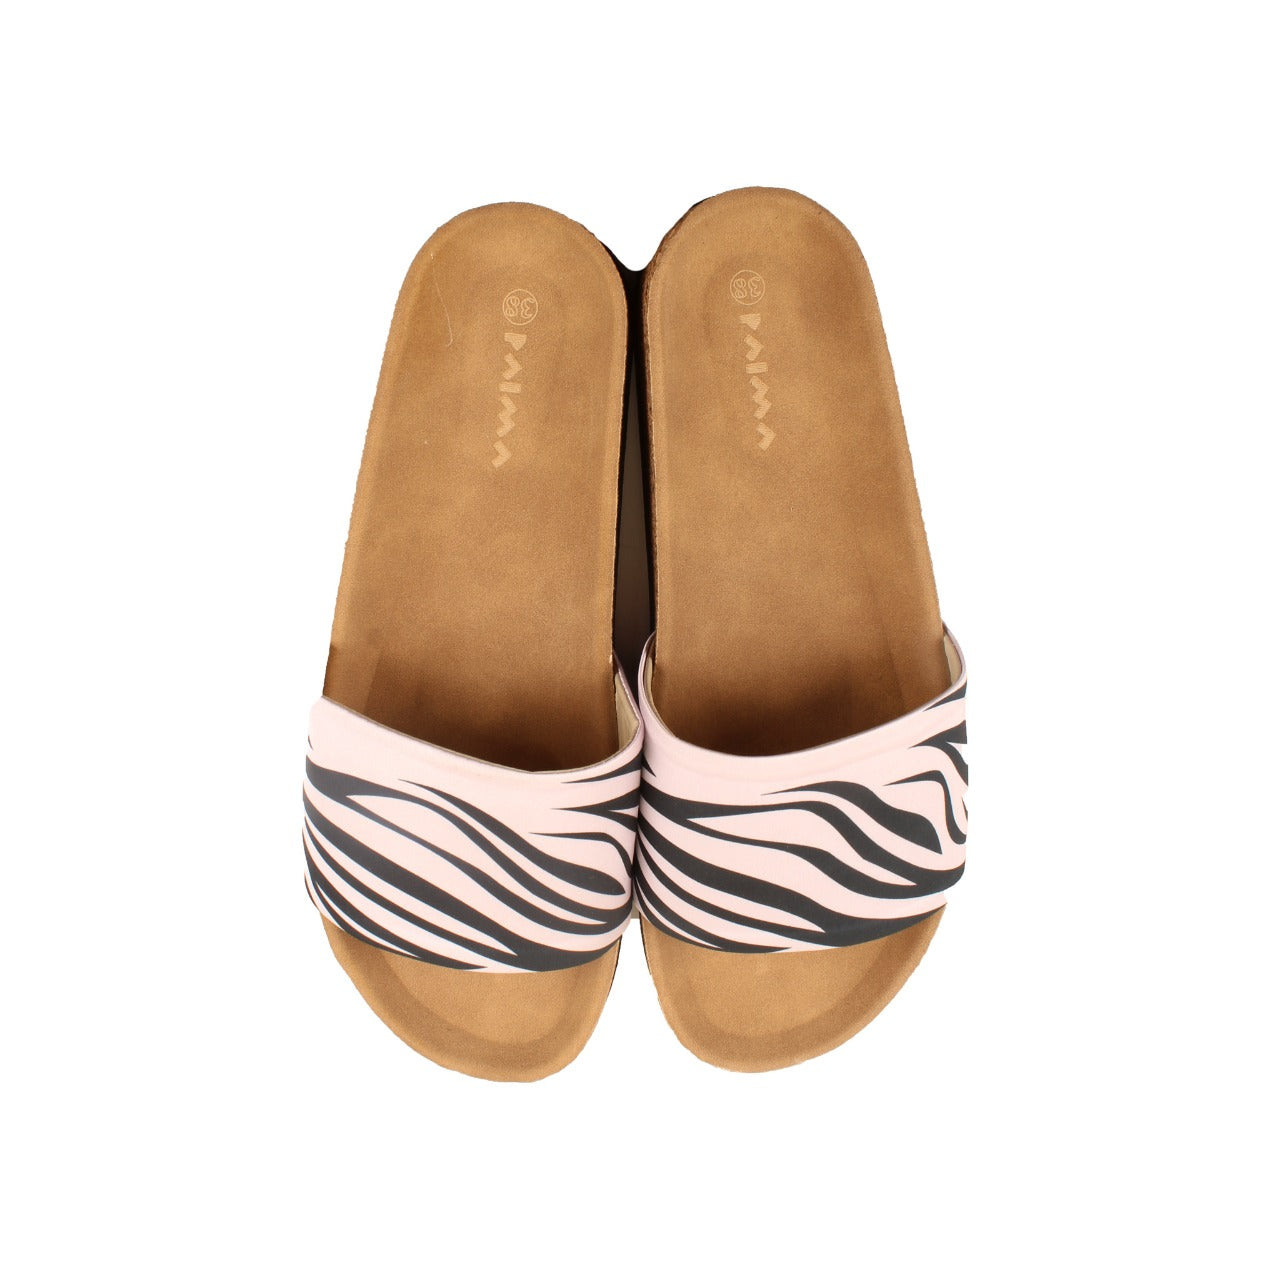 Zebra Slides Black x white